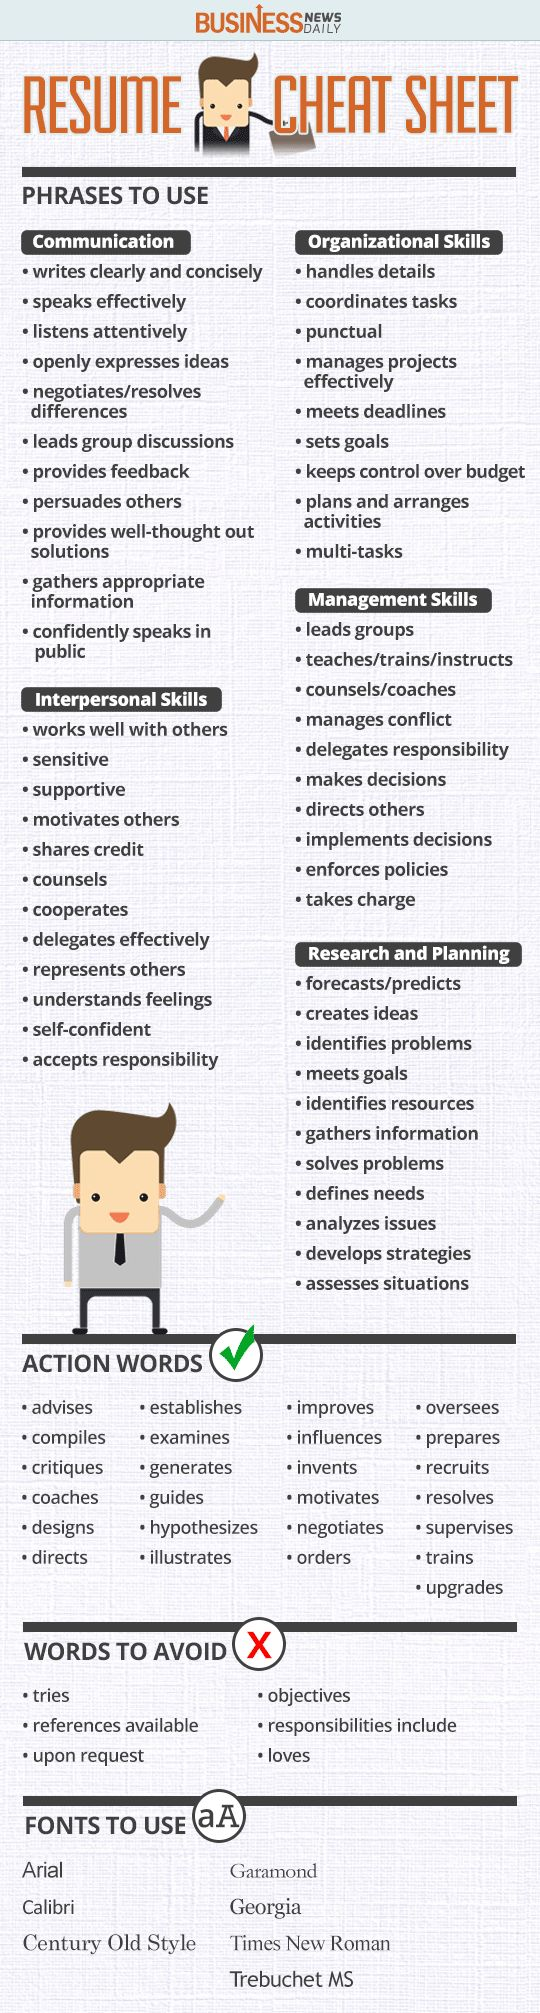 Opposenewapstandardsus  Marvellous  Ideas About Resume On Pinterest  Cv Format Resume Cv And  With Marvelous Resume Cheat Sheet Infographic Andrews Almost Done With A Complete Unit On Employment Which With Alluring Nursing Objective For Resume Also Skills Based Resume Examples In Addition Generic Resume Template And Resume Templates Mac As Well As Resume For A Bank Teller Additionally Elementary Teacher Resume Sample From Pinterestcom With Opposenewapstandardsus  Marvelous  Ideas About Resume On Pinterest  Cv Format Resume Cv And  With Alluring Resume Cheat Sheet Infographic Andrews Almost Done With A Complete Unit On Employment Which And Marvellous Nursing Objective For Resume Also Skills Based Resume Examples In Addition Generic Resume Template From Pinterestcom